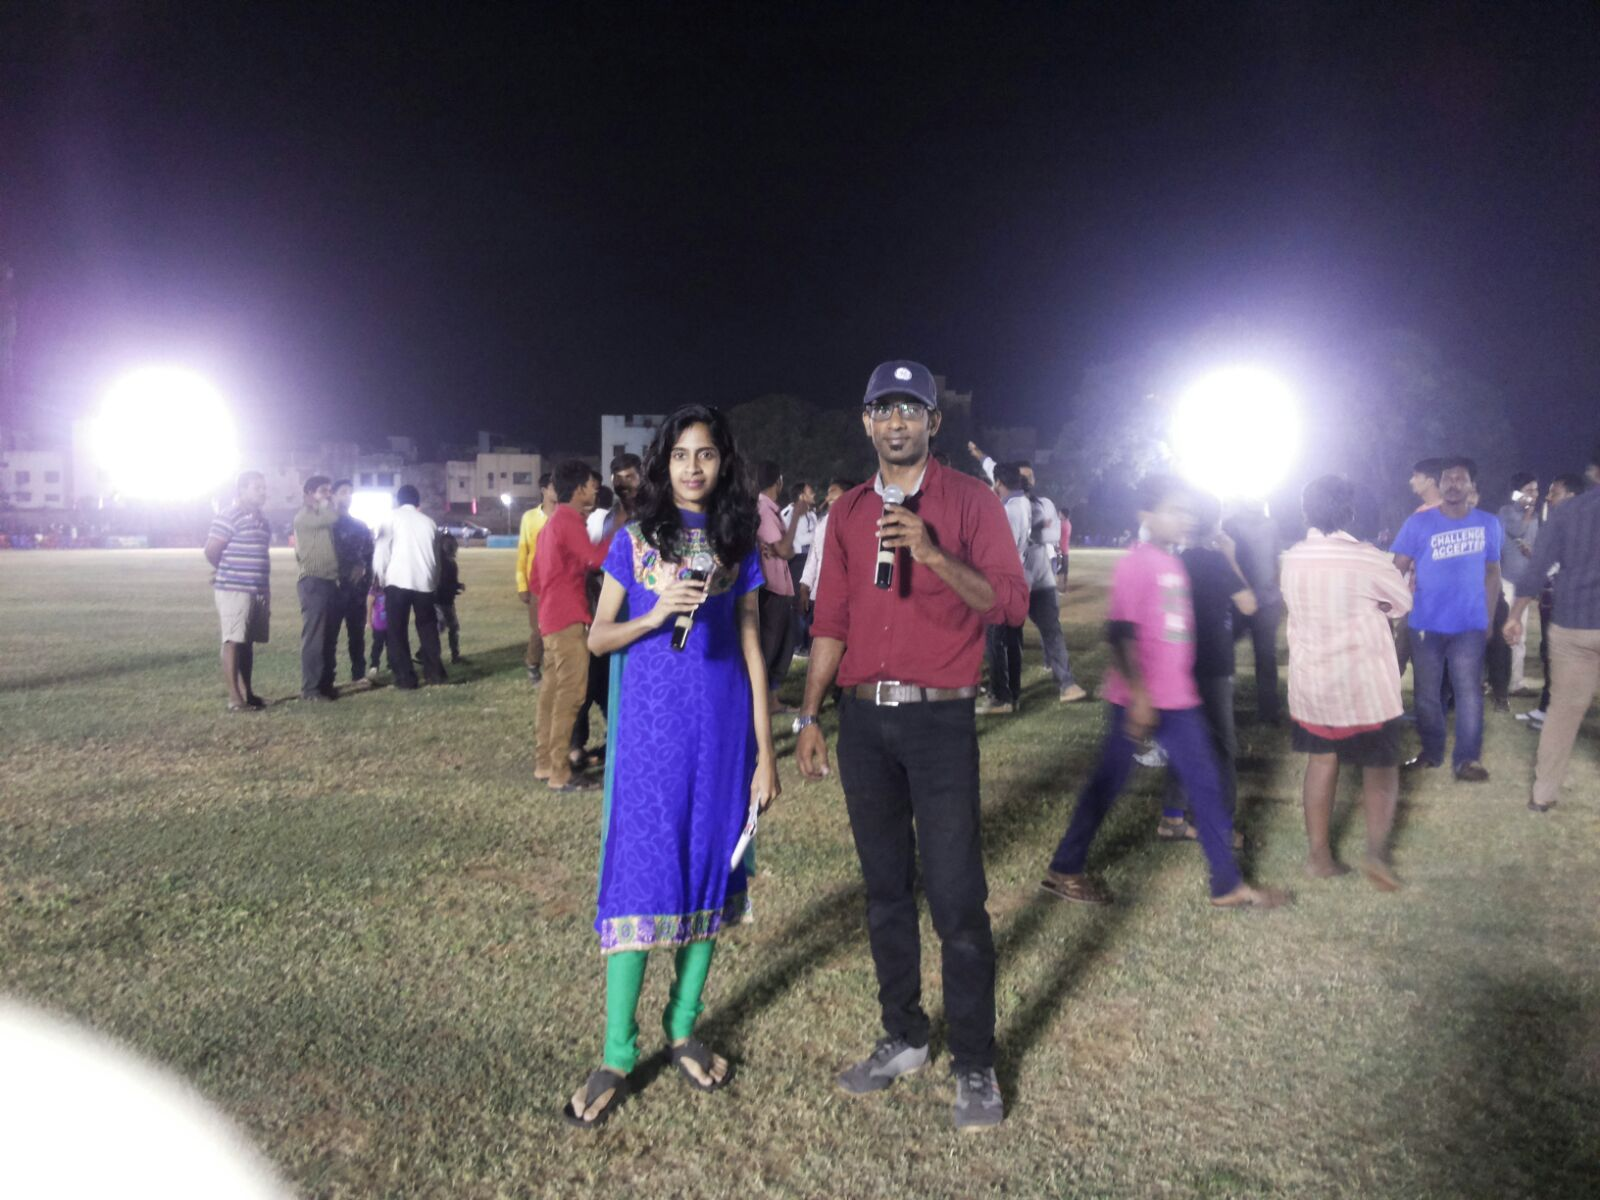 Chennai Sports Cohosts Nandhini and Thamizh hosting Republic Cup Flood Light Cricket Match at Amir Mahal